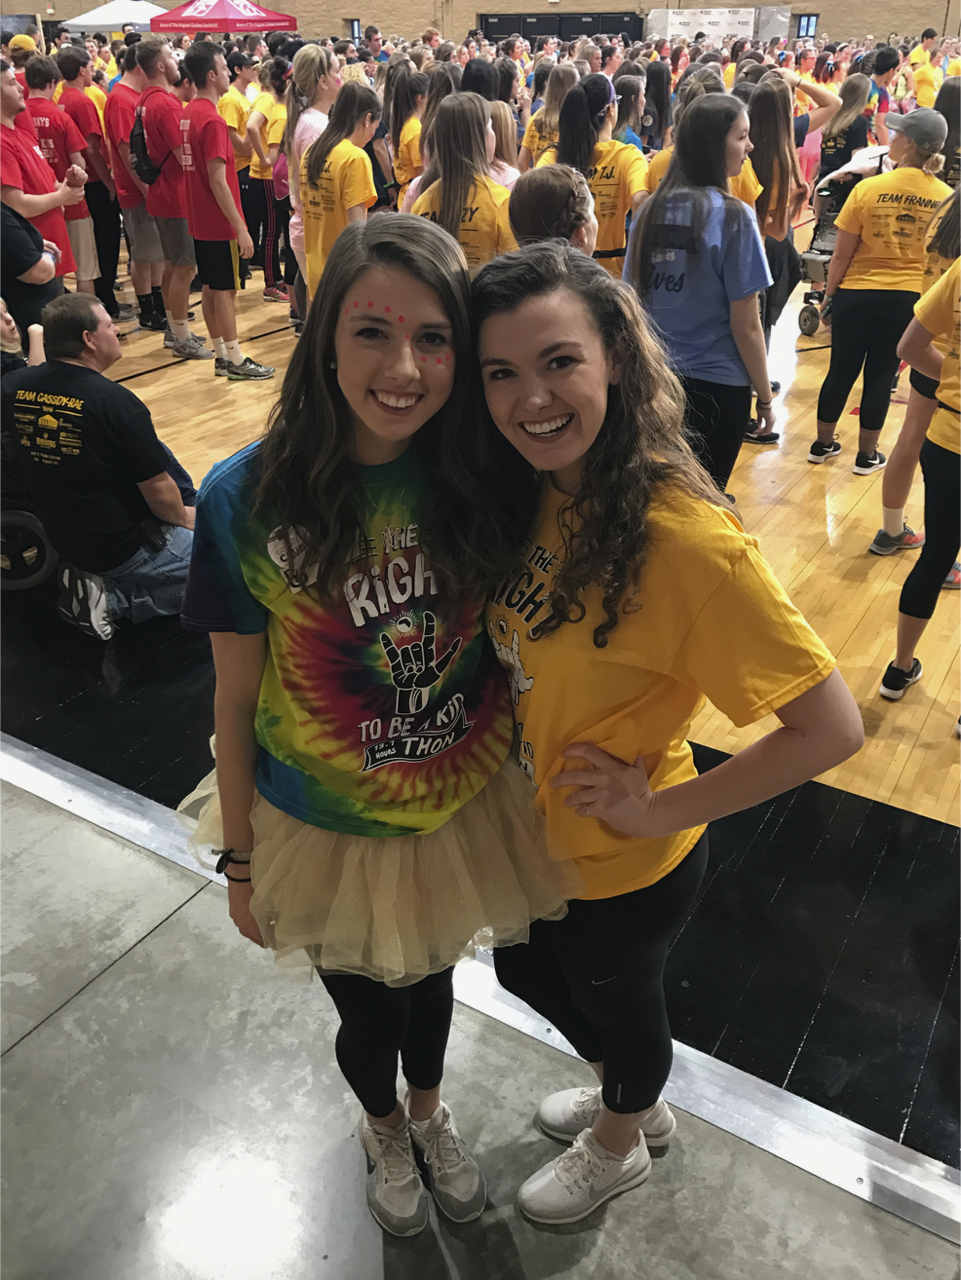 Lawson and fellow junior Emma Berry, of O'Fallon, Missouri, are volunteers for MizzouThon. Lawson also helps coordinate Mini MizzouThon, a version of the fundraiser for local high school students.